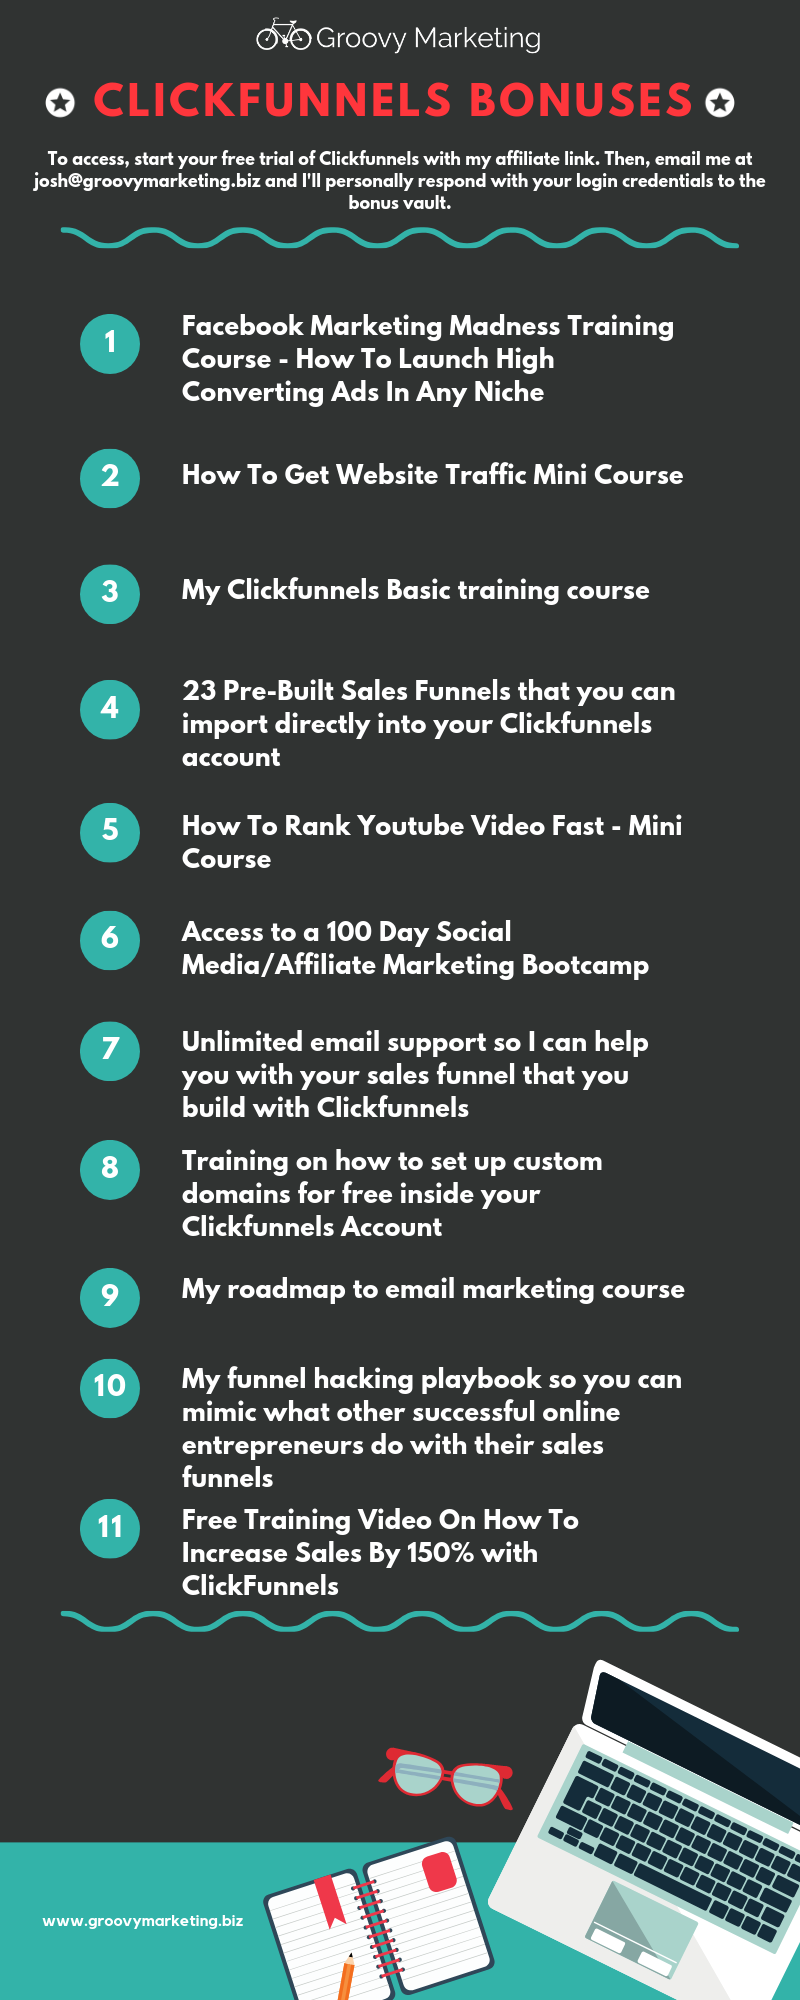 My Clickfunnels Bonuses Infographic.png